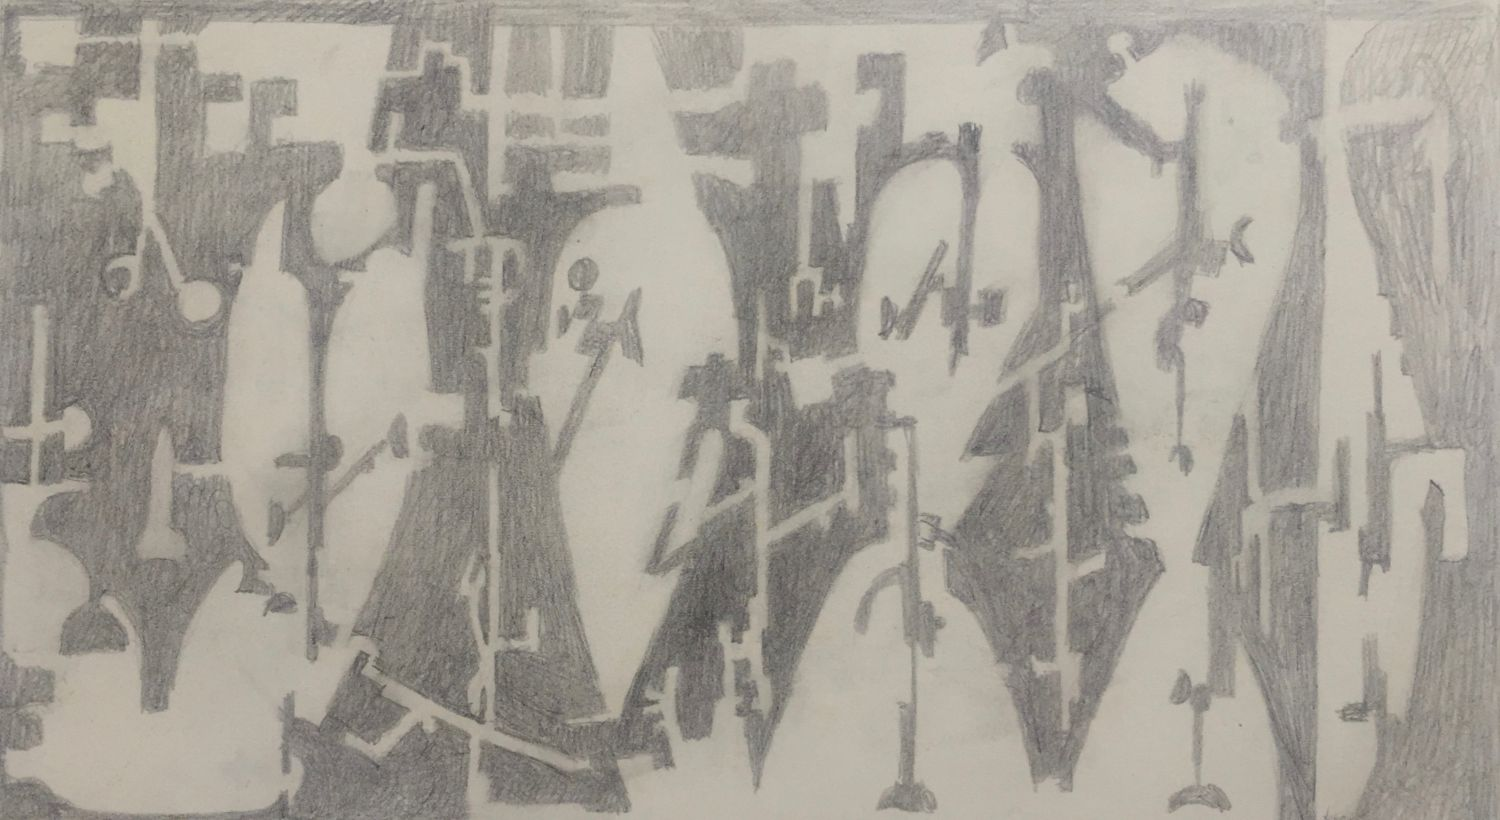 Curt Lahs | Additons Bright and Dark | 1957 | pencil | verso signed, dated and titled by estate | 15.2 x 20.8